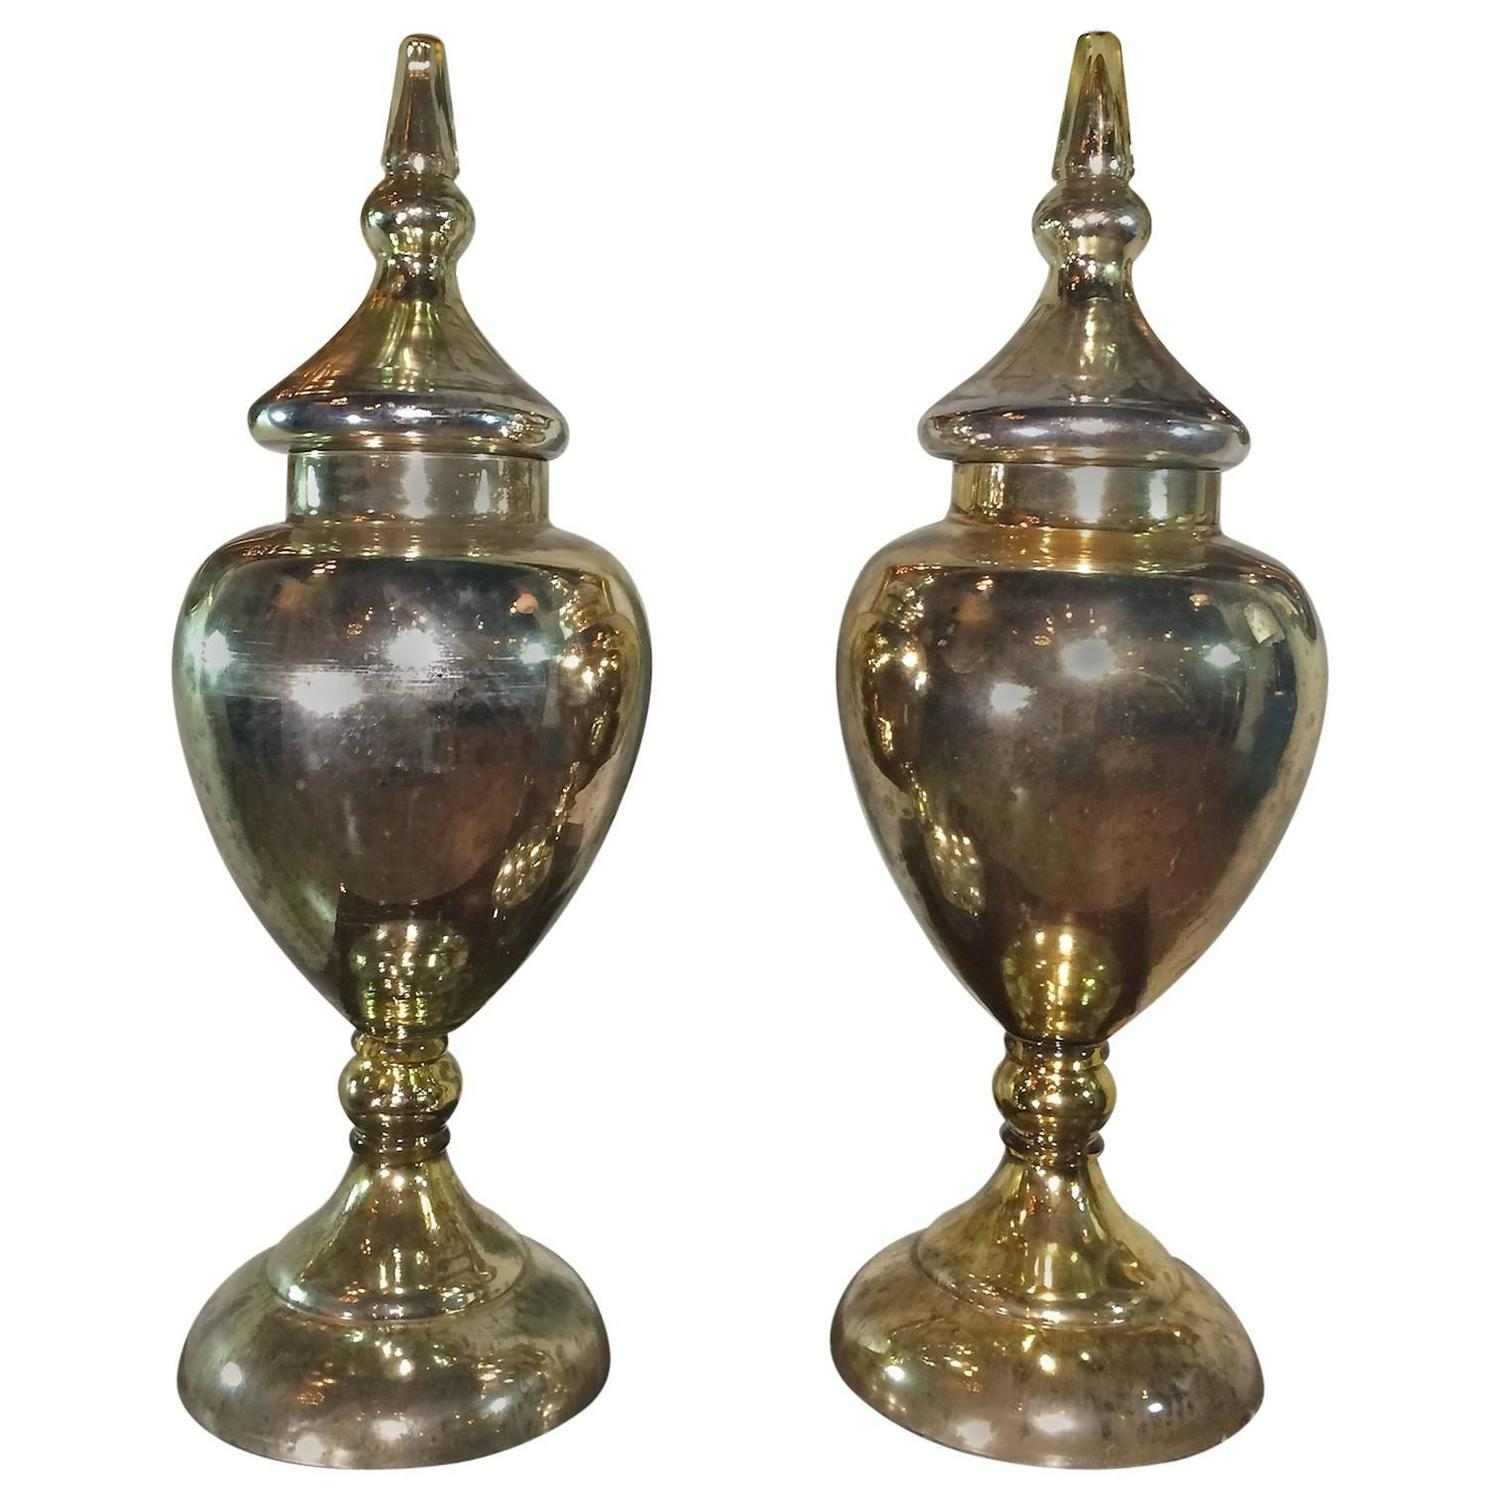 Pair Of Mercury Glass Urns For Sale At 1stdibs